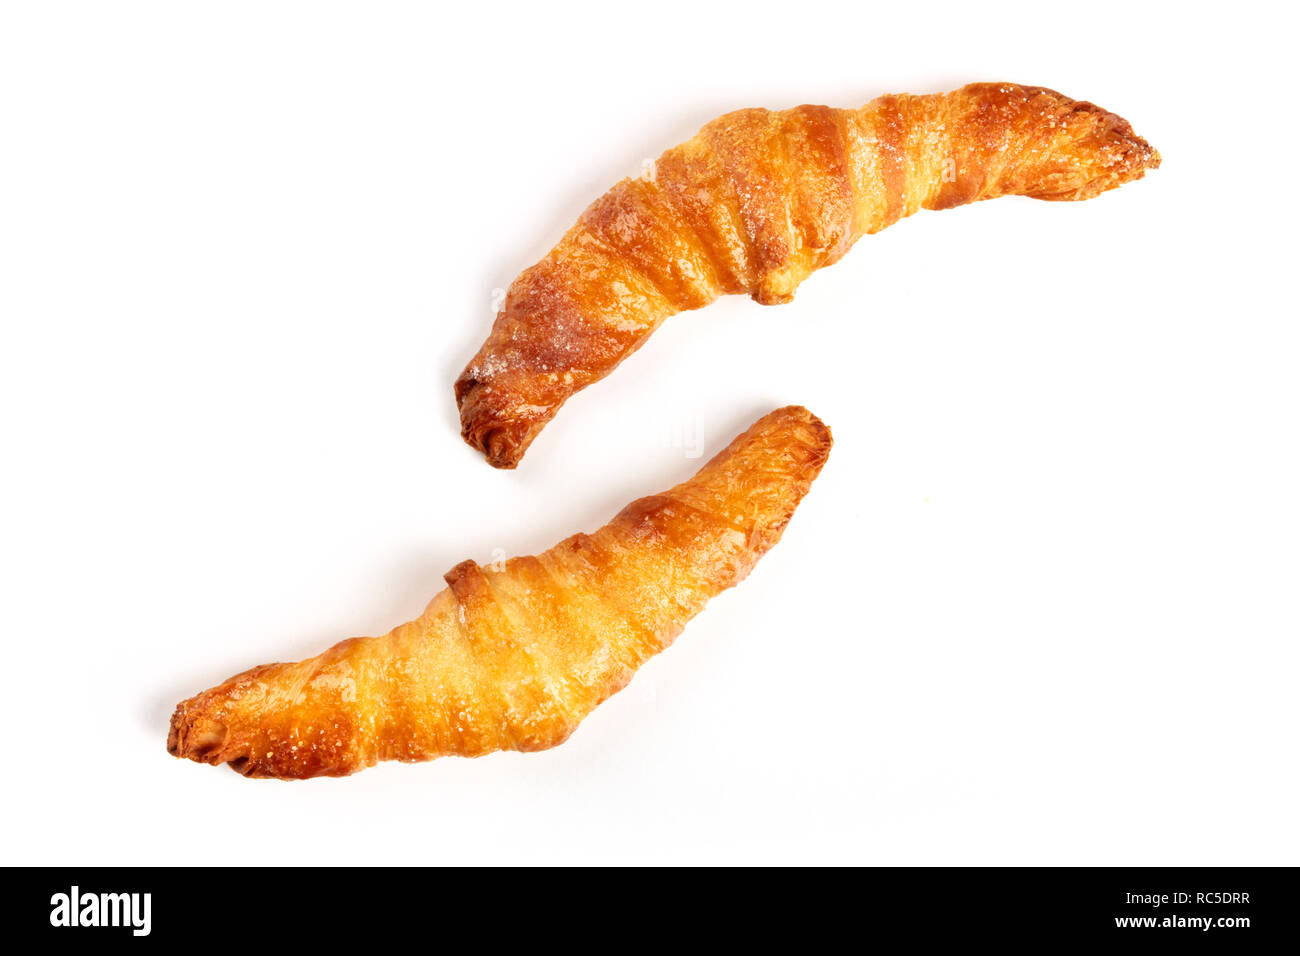 Two croissants on a white background, shot from the top, with a place for text - Stock Image